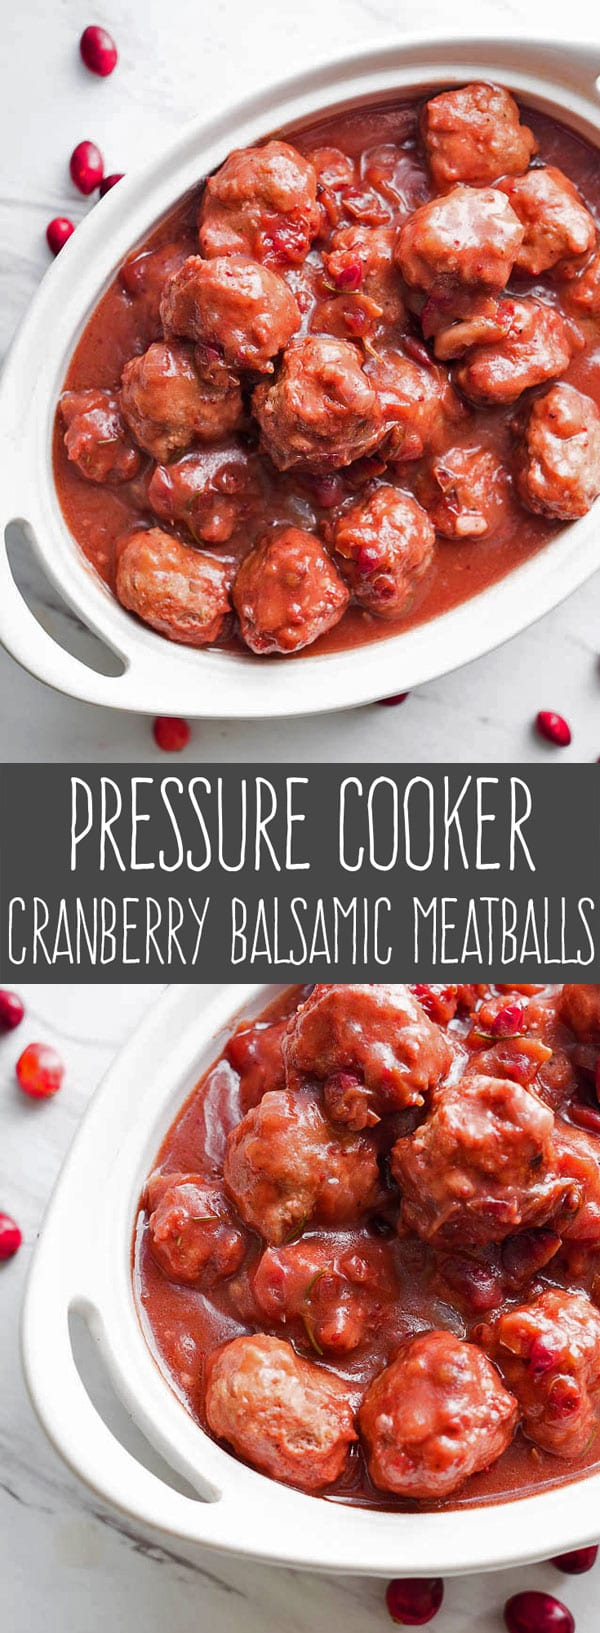 titled photo collage - pressure cooker cranberry balsamic meatballs